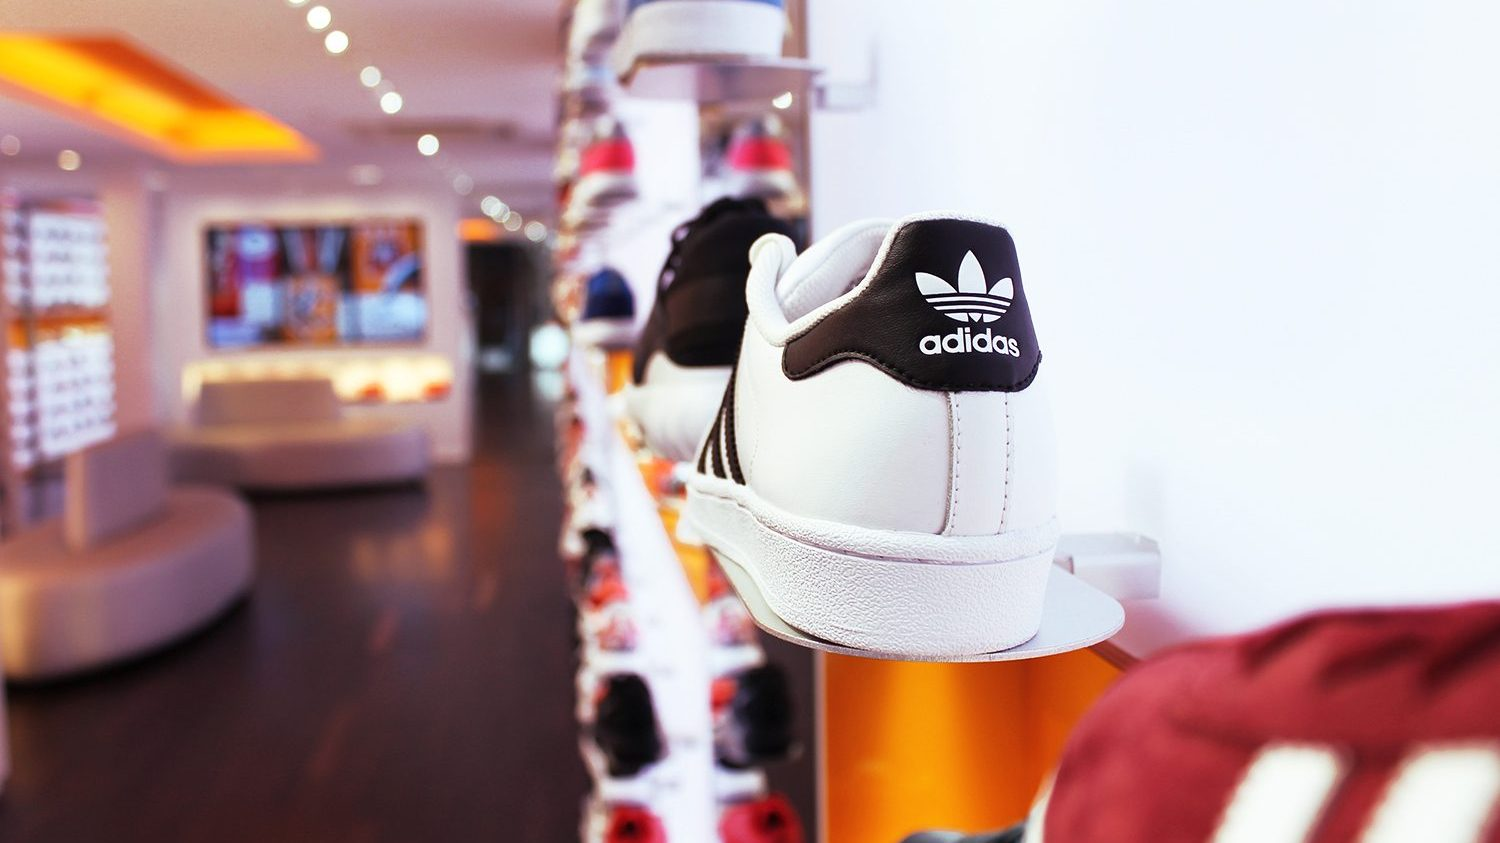 mauricestyle-blog-mode-homme-strasbourg-wanamanashoes-sneakers-stansmith-adidas-1